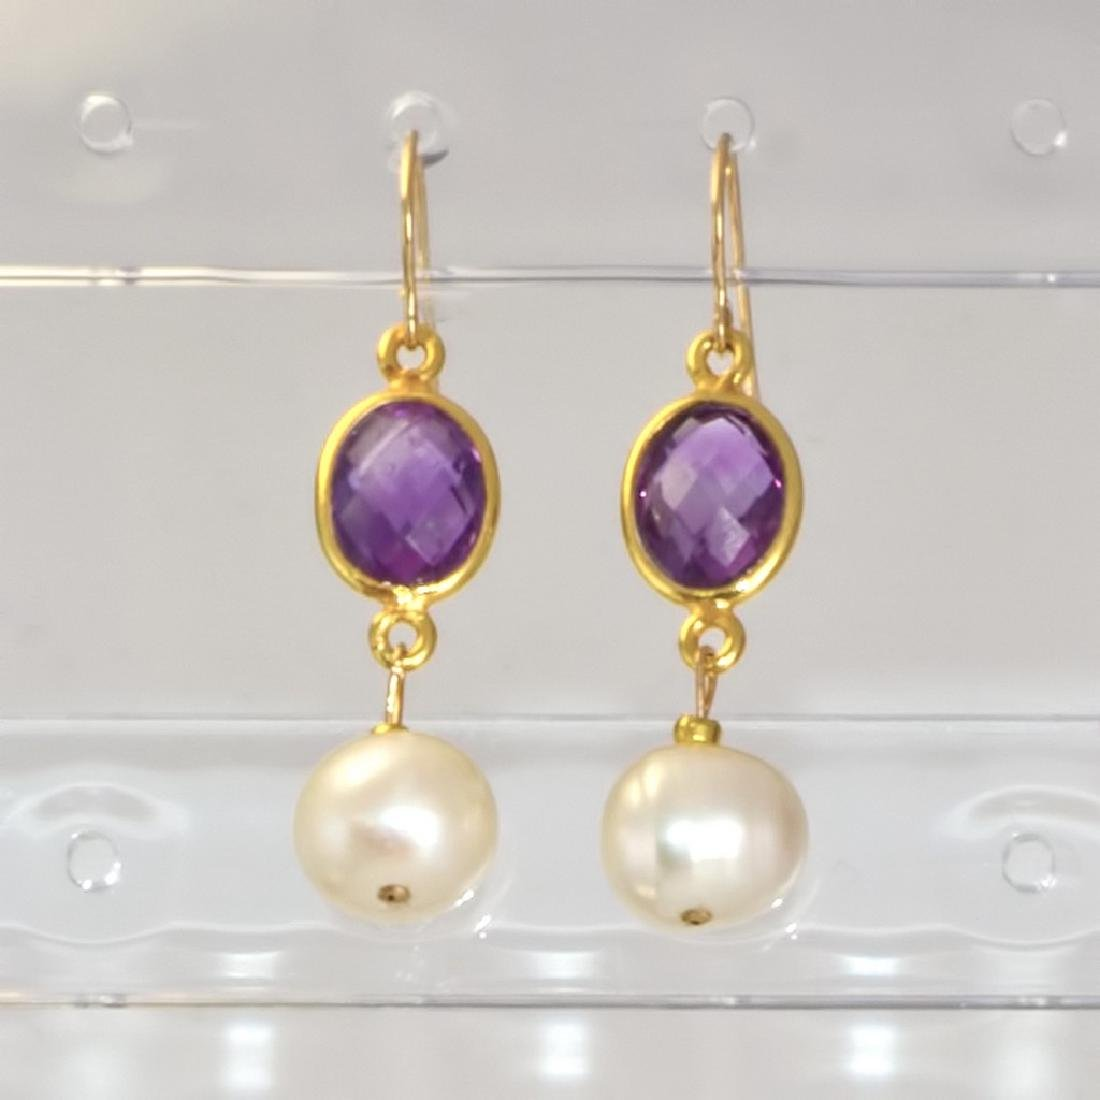 14K Earrings with Pearls and Brazilian Amethysts